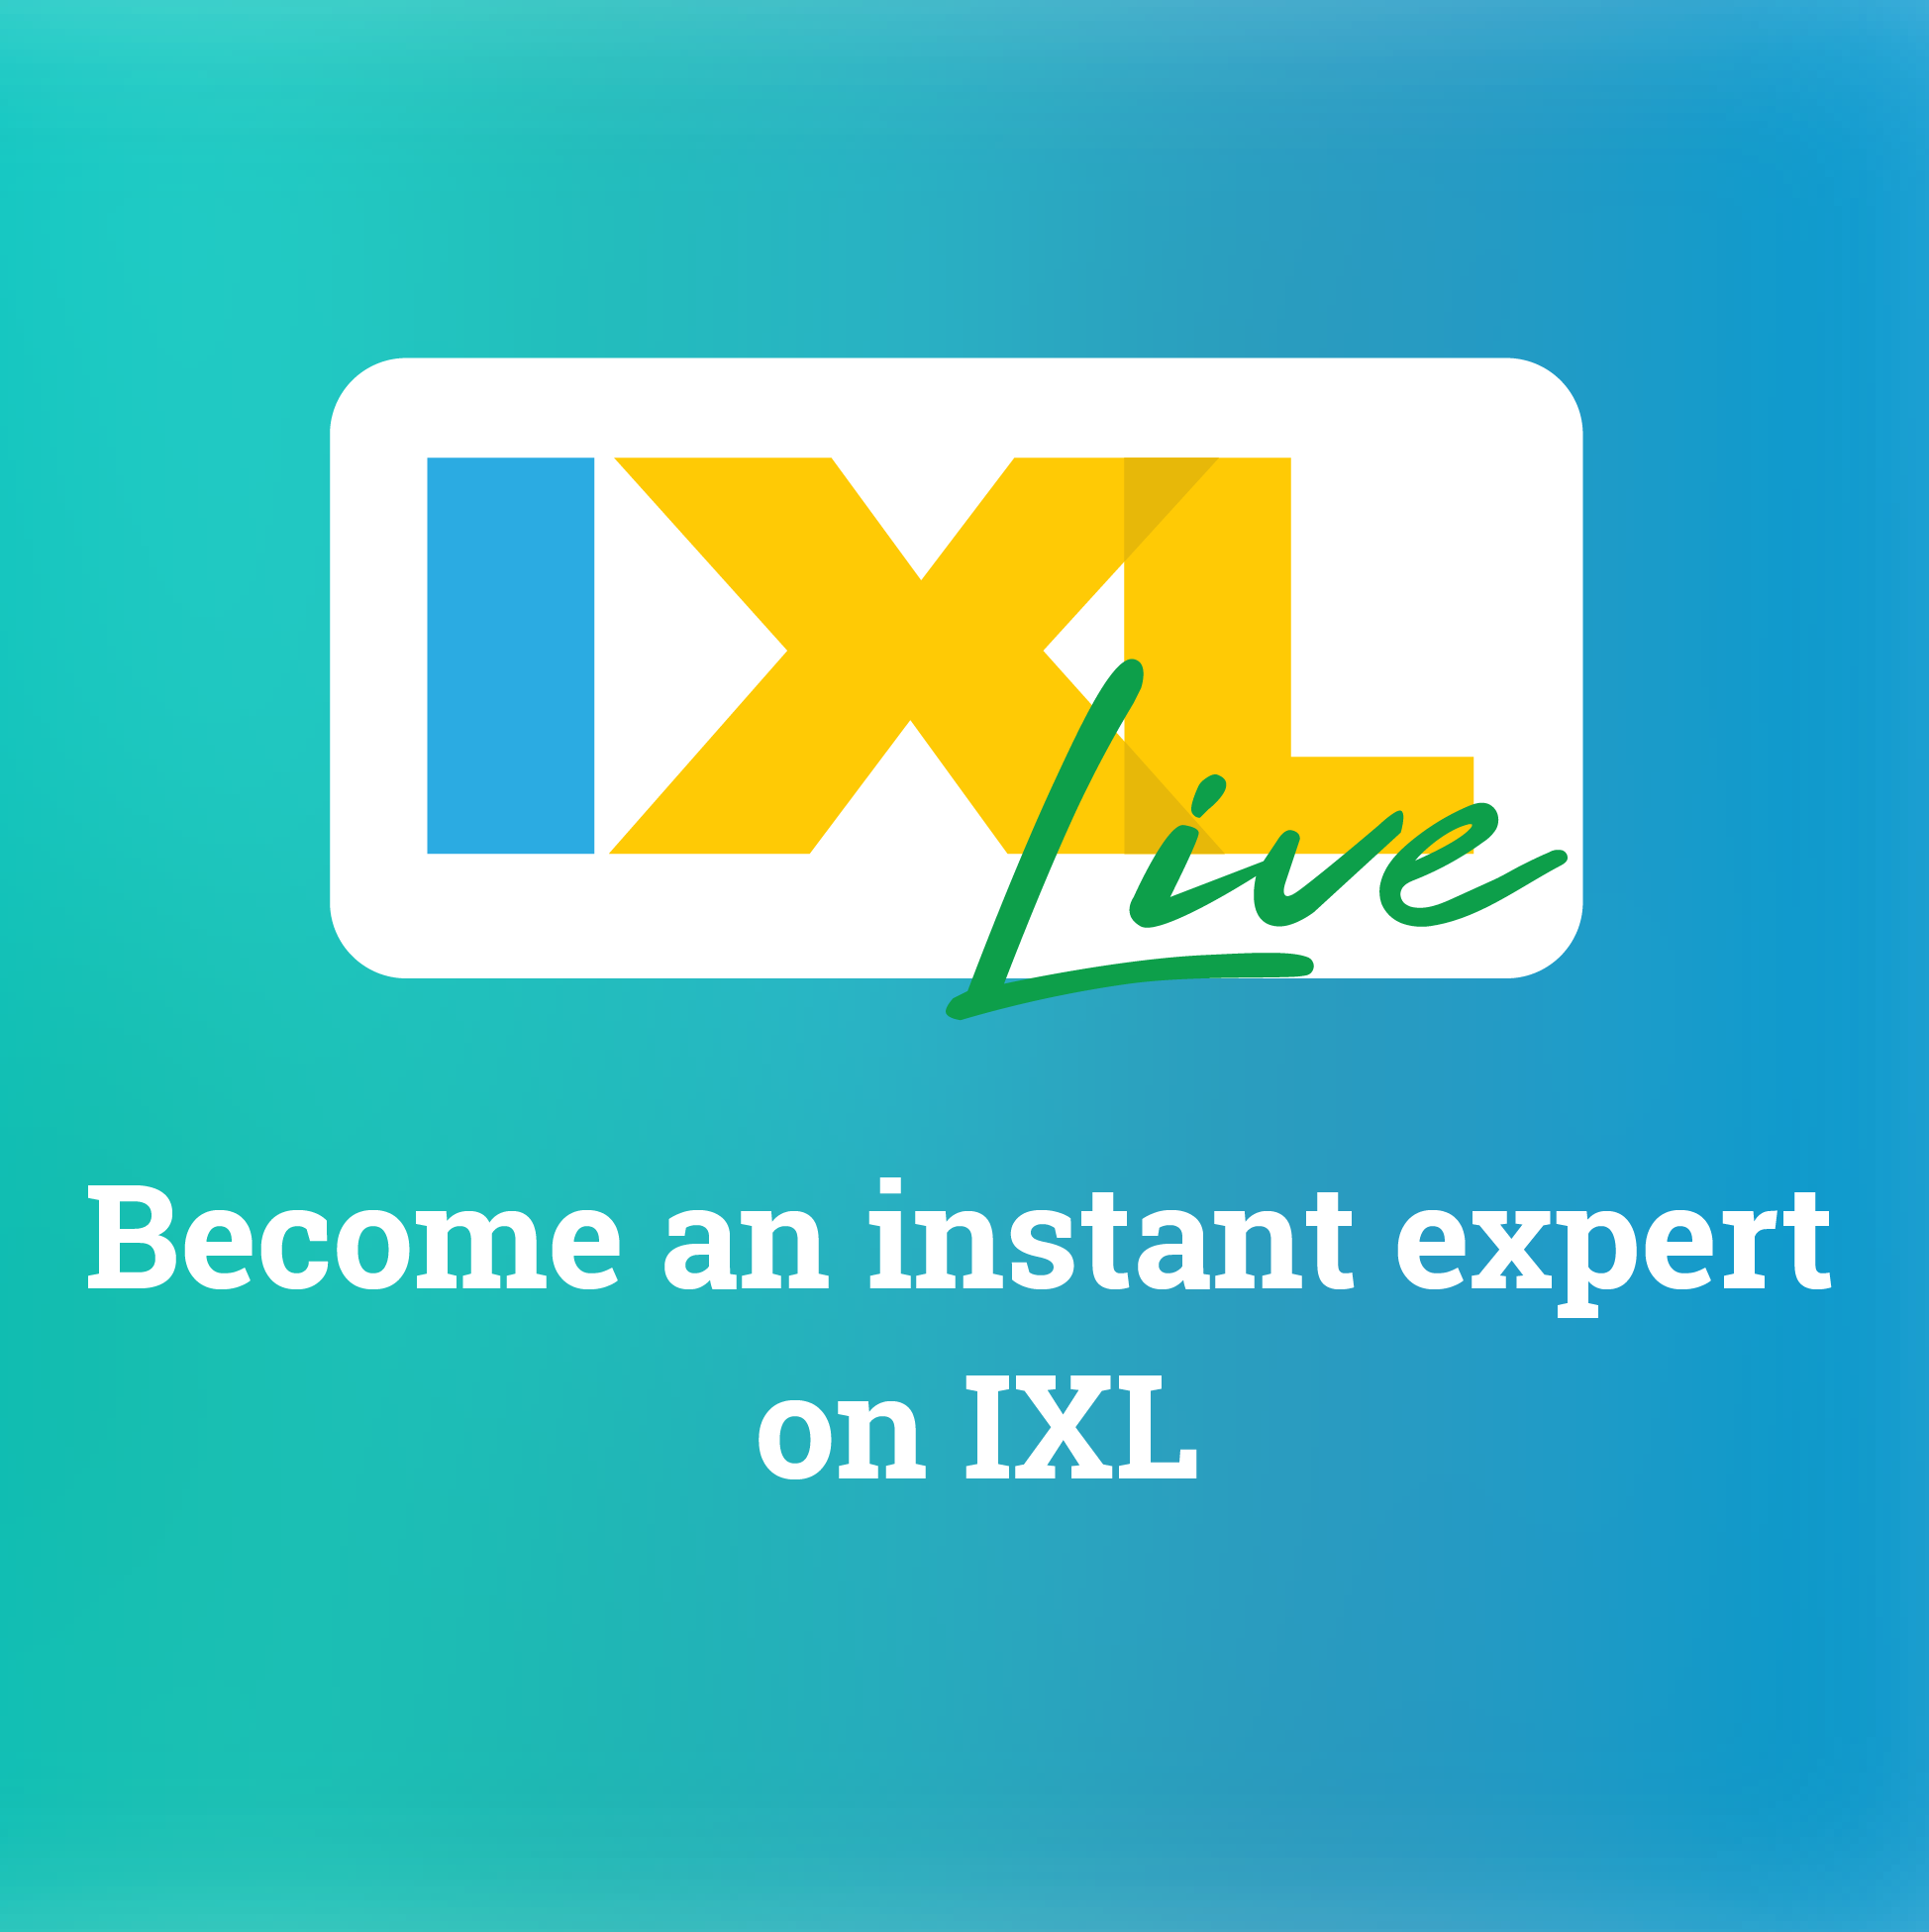 Join us at IXL Live this fall!